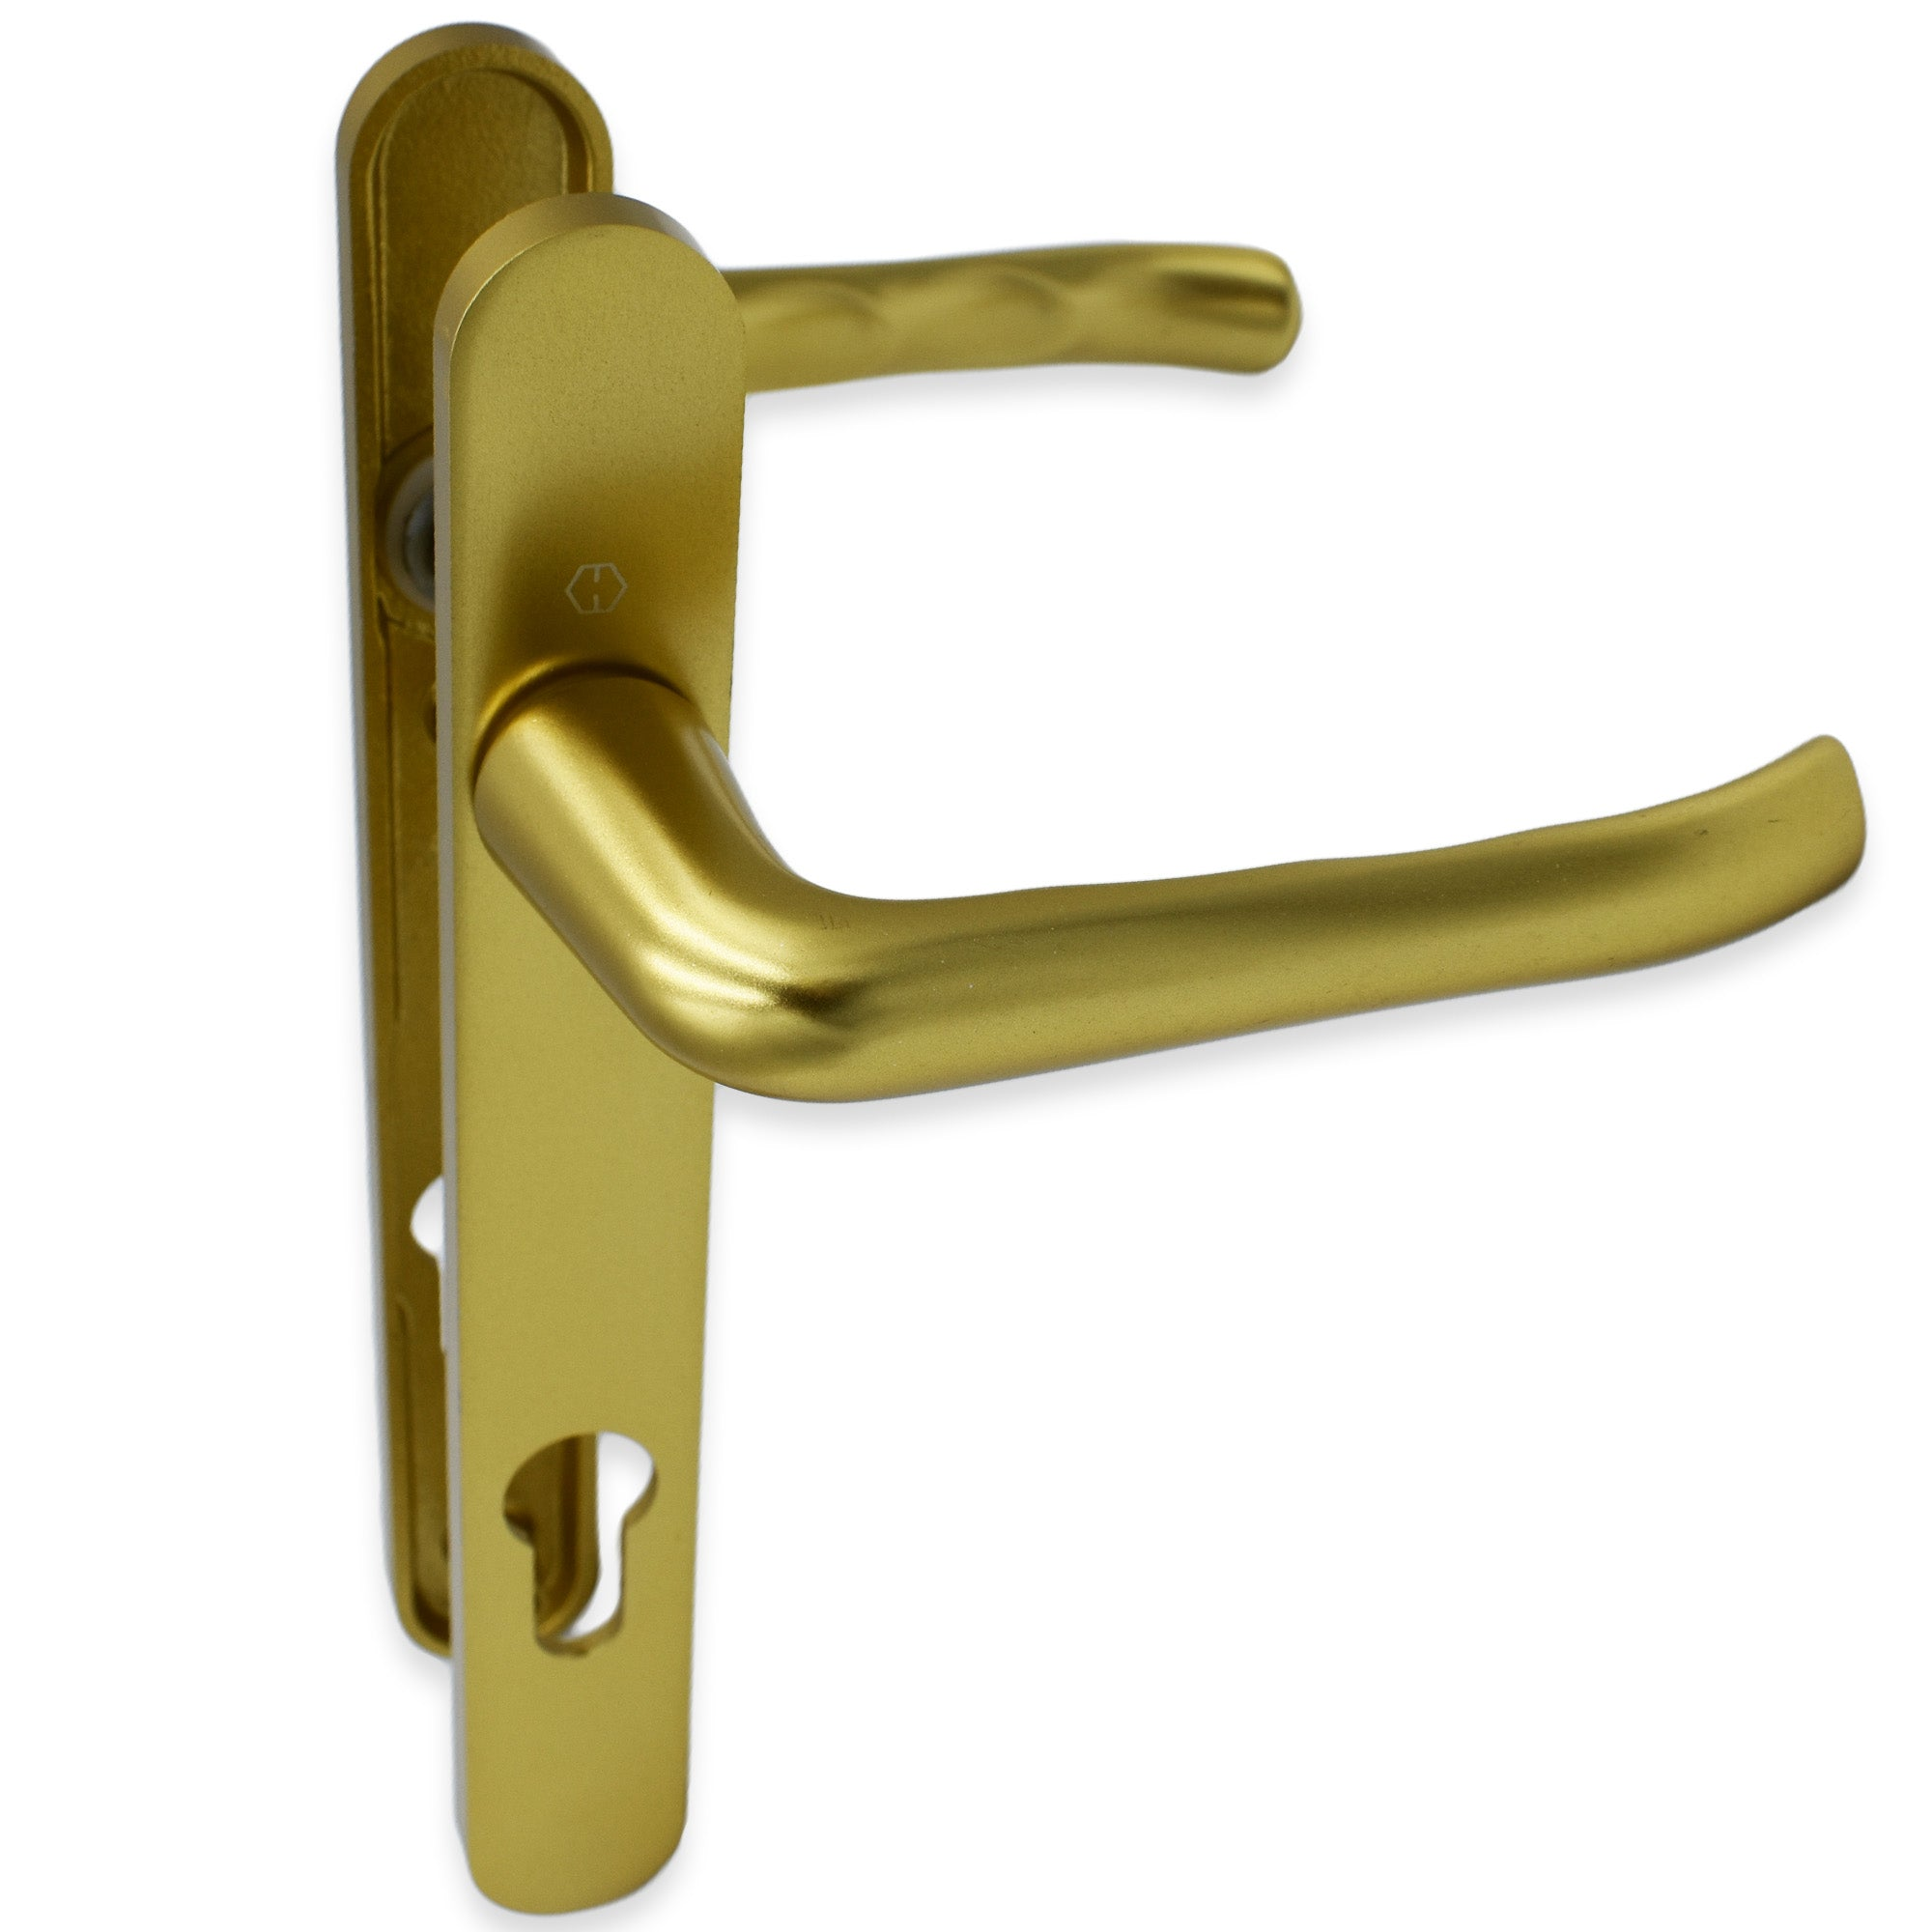 Hoppe Gold 44mm Door uPVC Door Handle 92PZ 122mm Screw Centres -  - Hoppe - UPVCSTORE